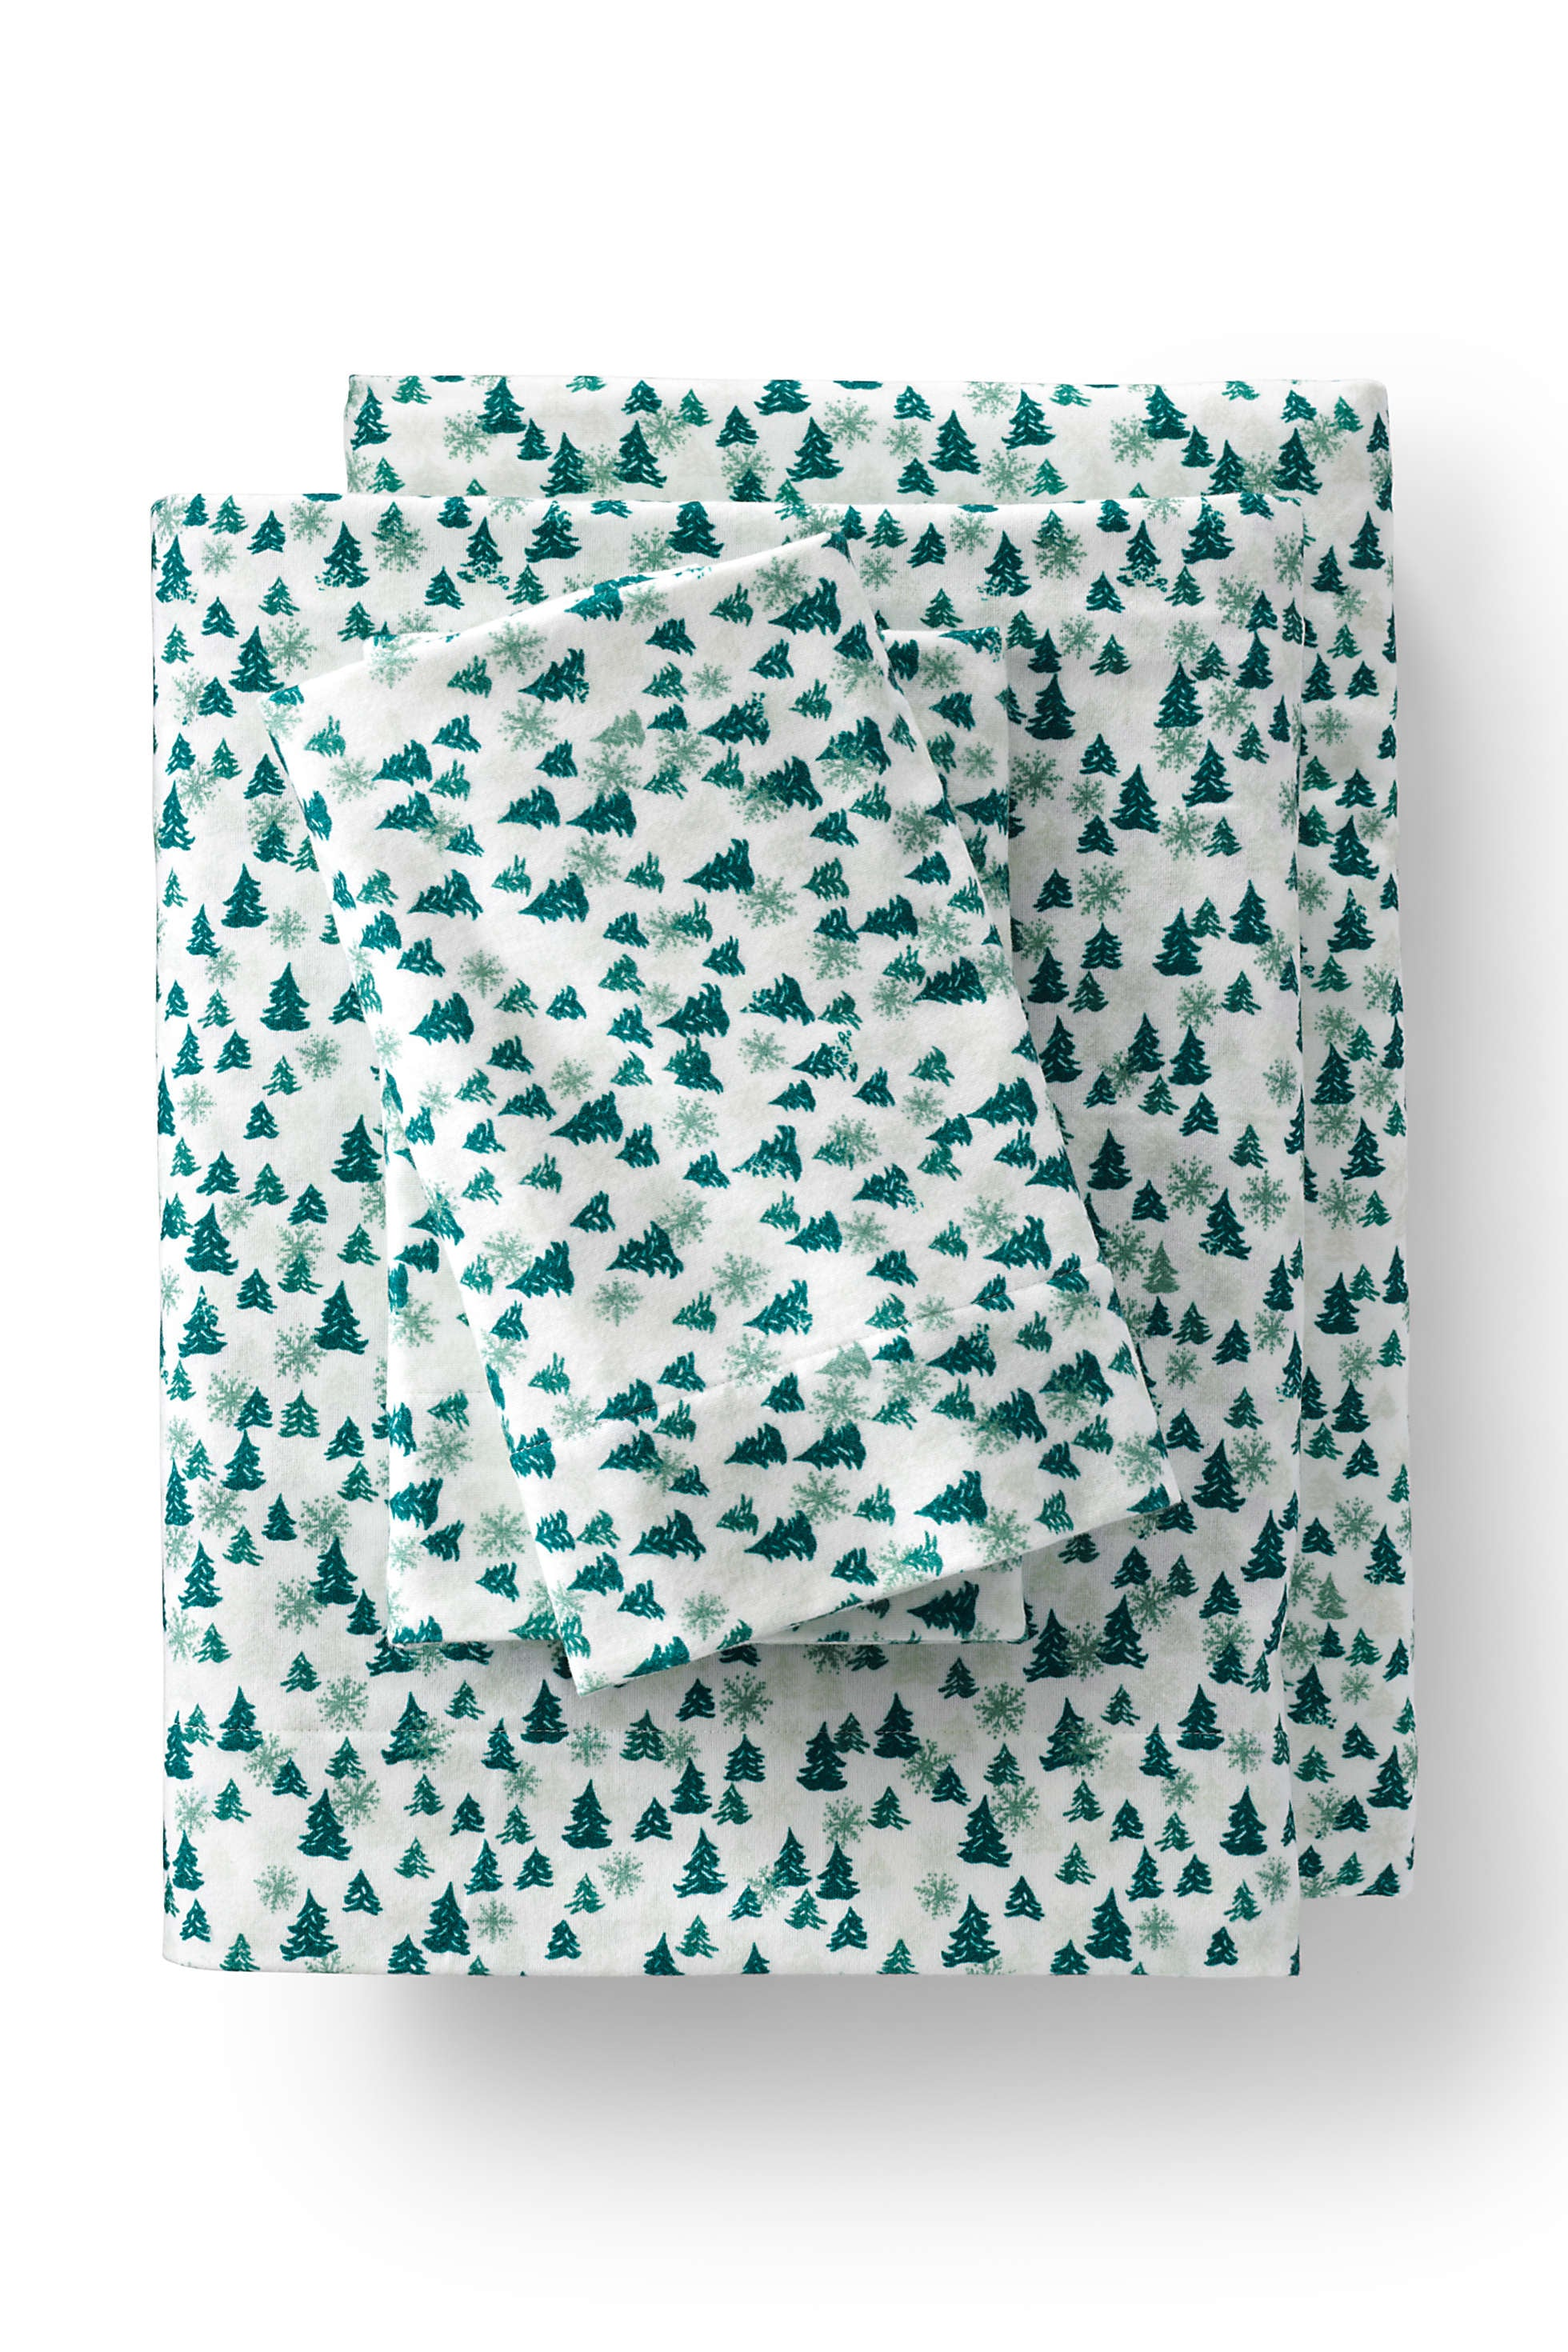 Lands End Velvet Flannel Sheets These Holiday Themed Flannel Sheet Sets Will Keep You Nice And Cozy All Season Long Popsugar Home Photo 5